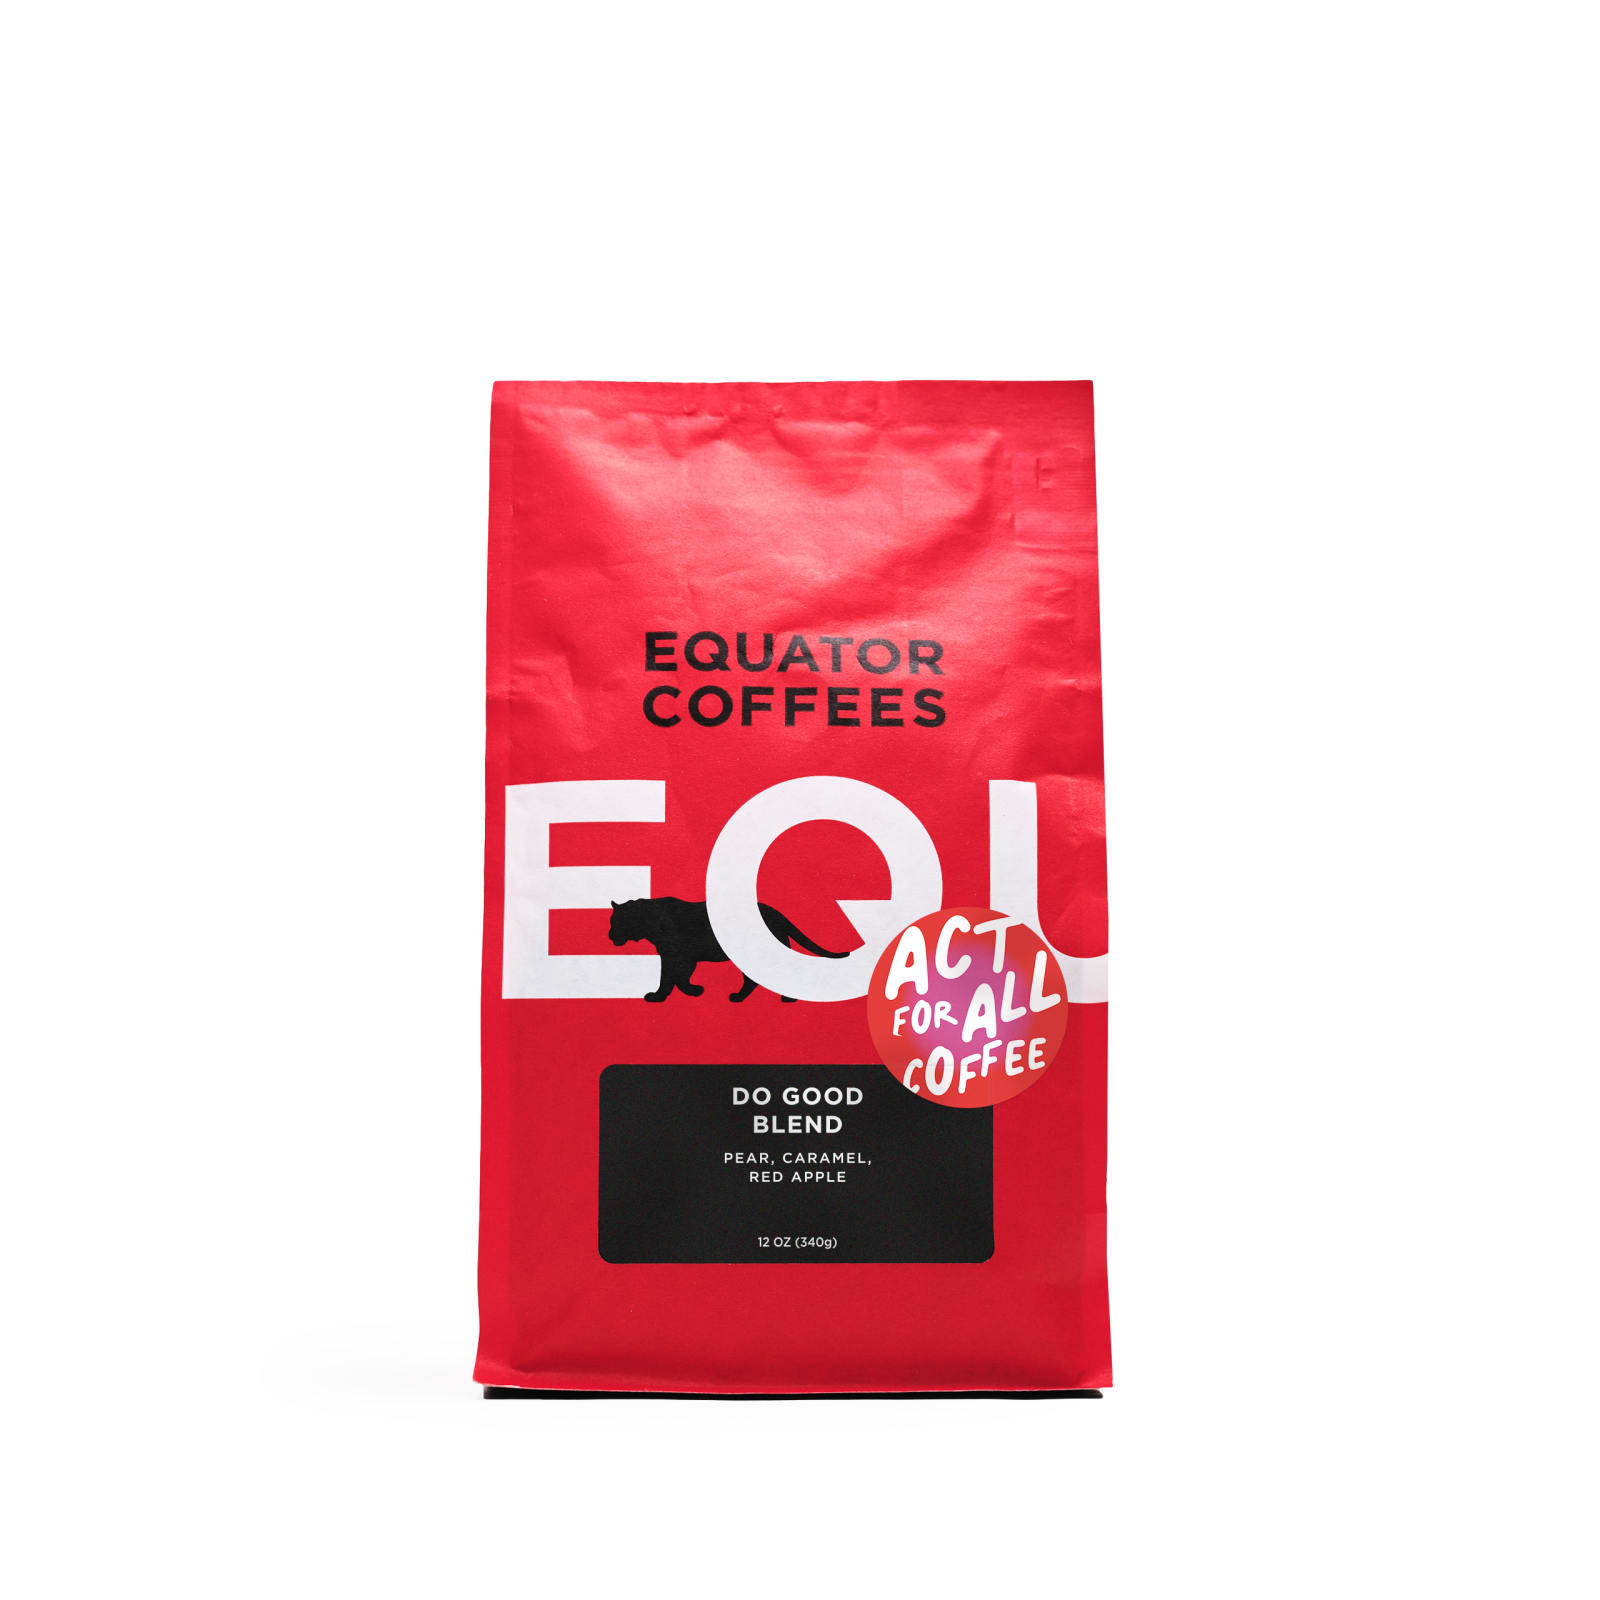 Act for All Coffee: Do Good Blend